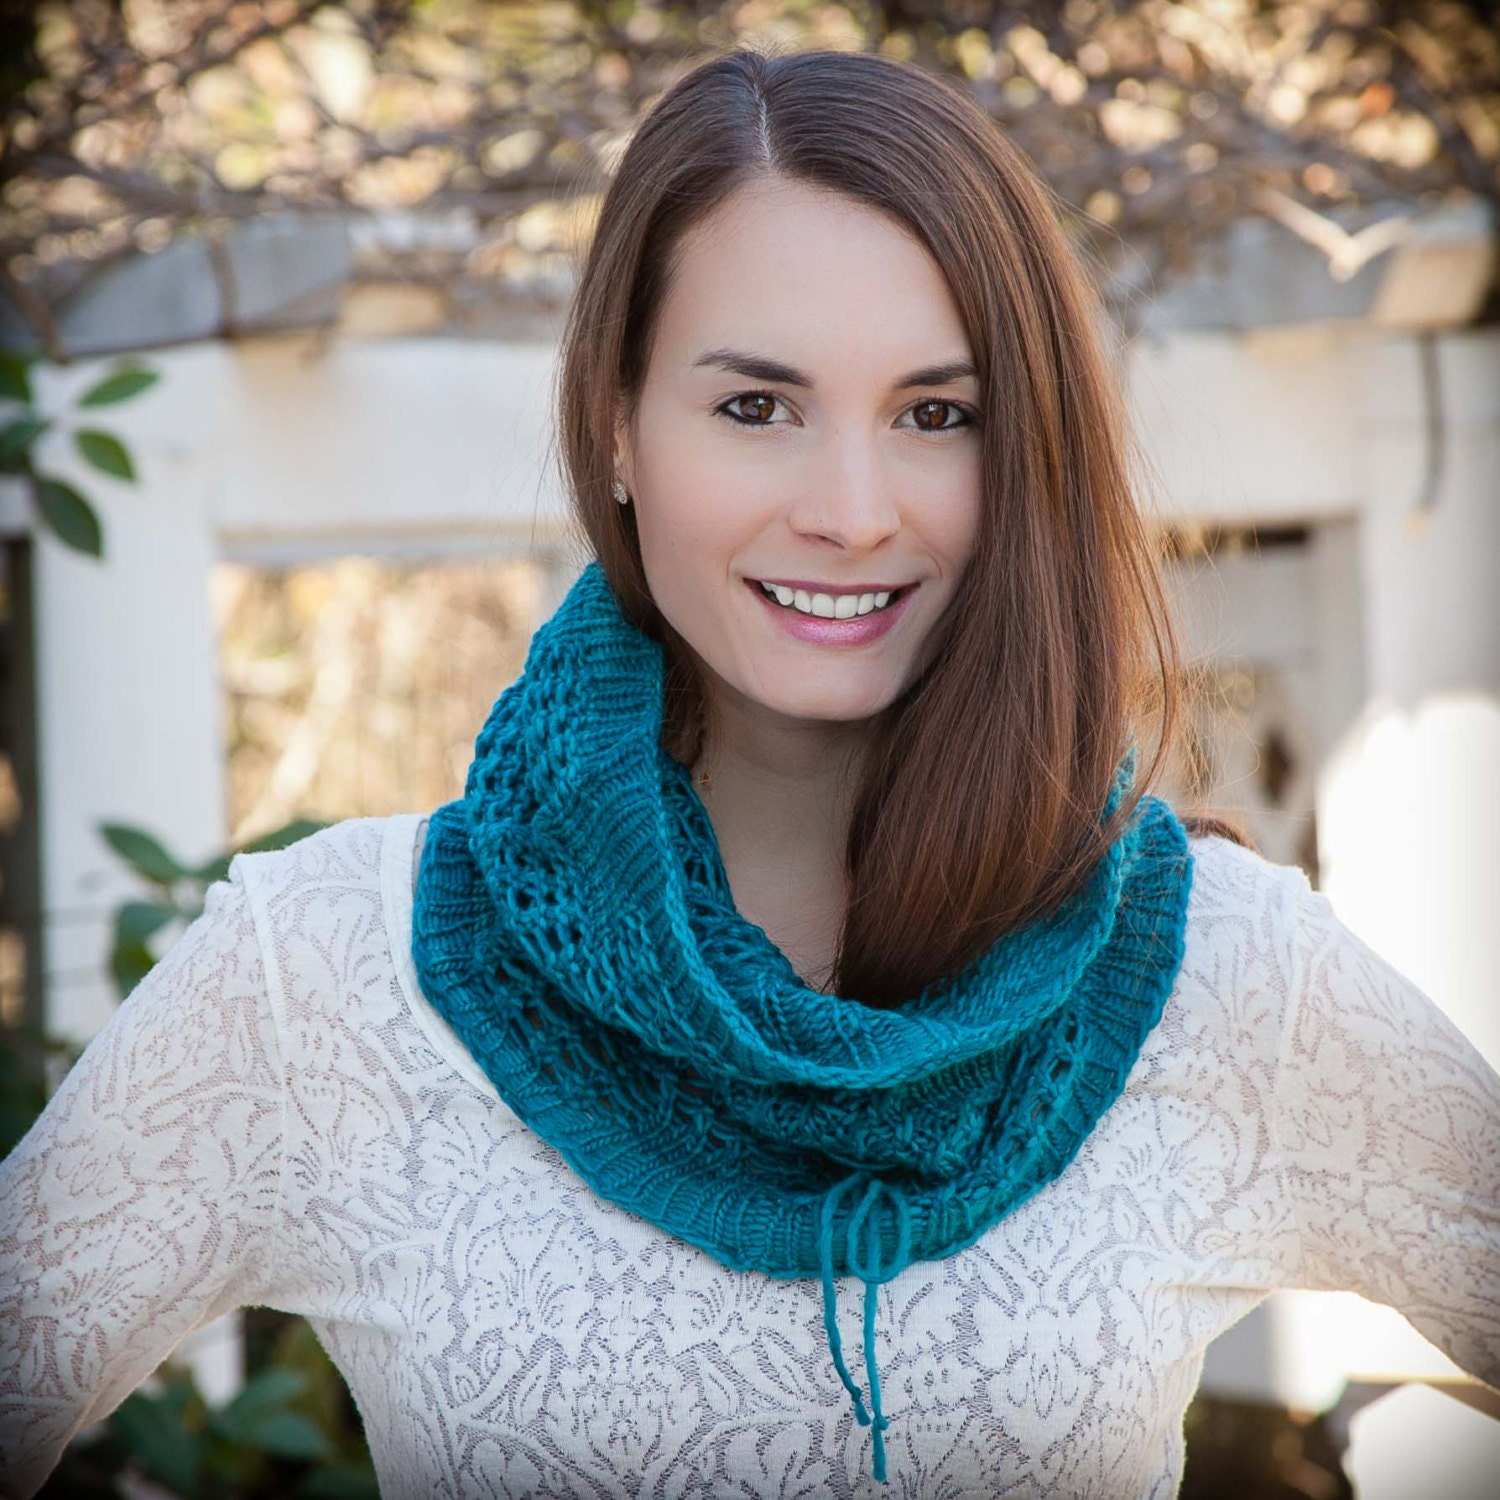 Loom Knit Snood Cowl PATTERN. Lace Snood, Infinity Scarf, Easy lace ...